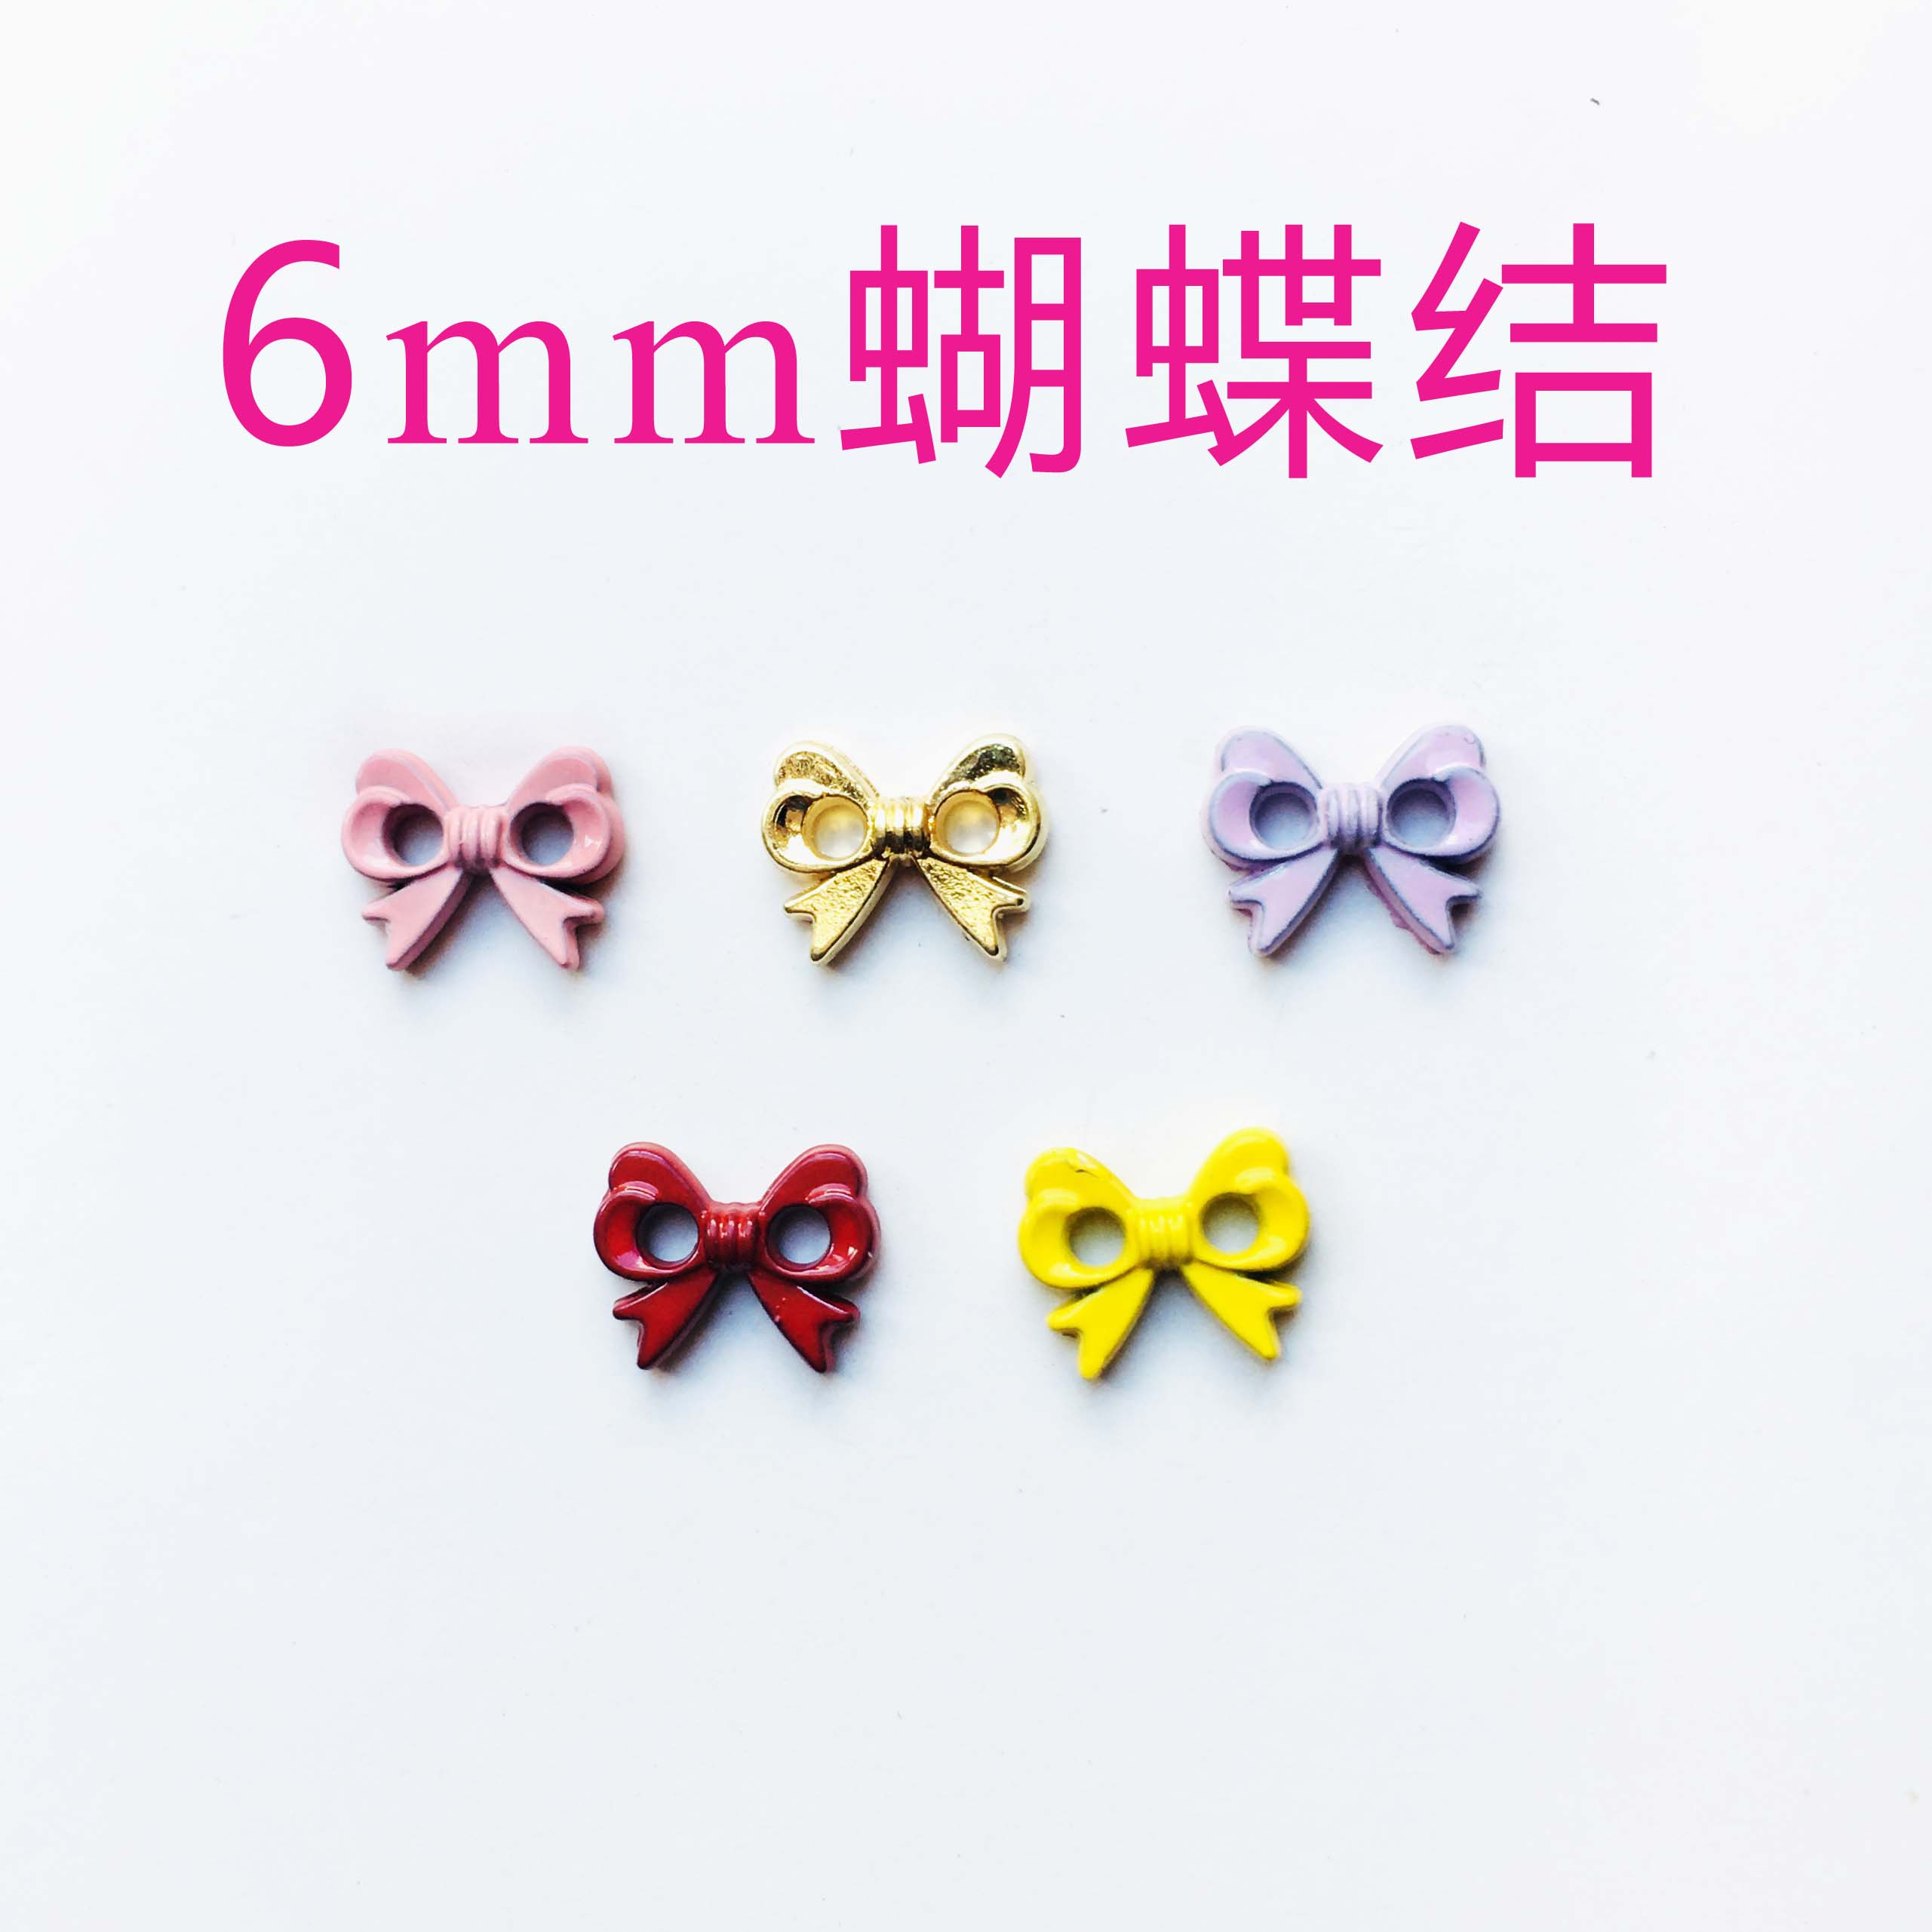 6mm bow button BJD small doll button super small color handmade accessories